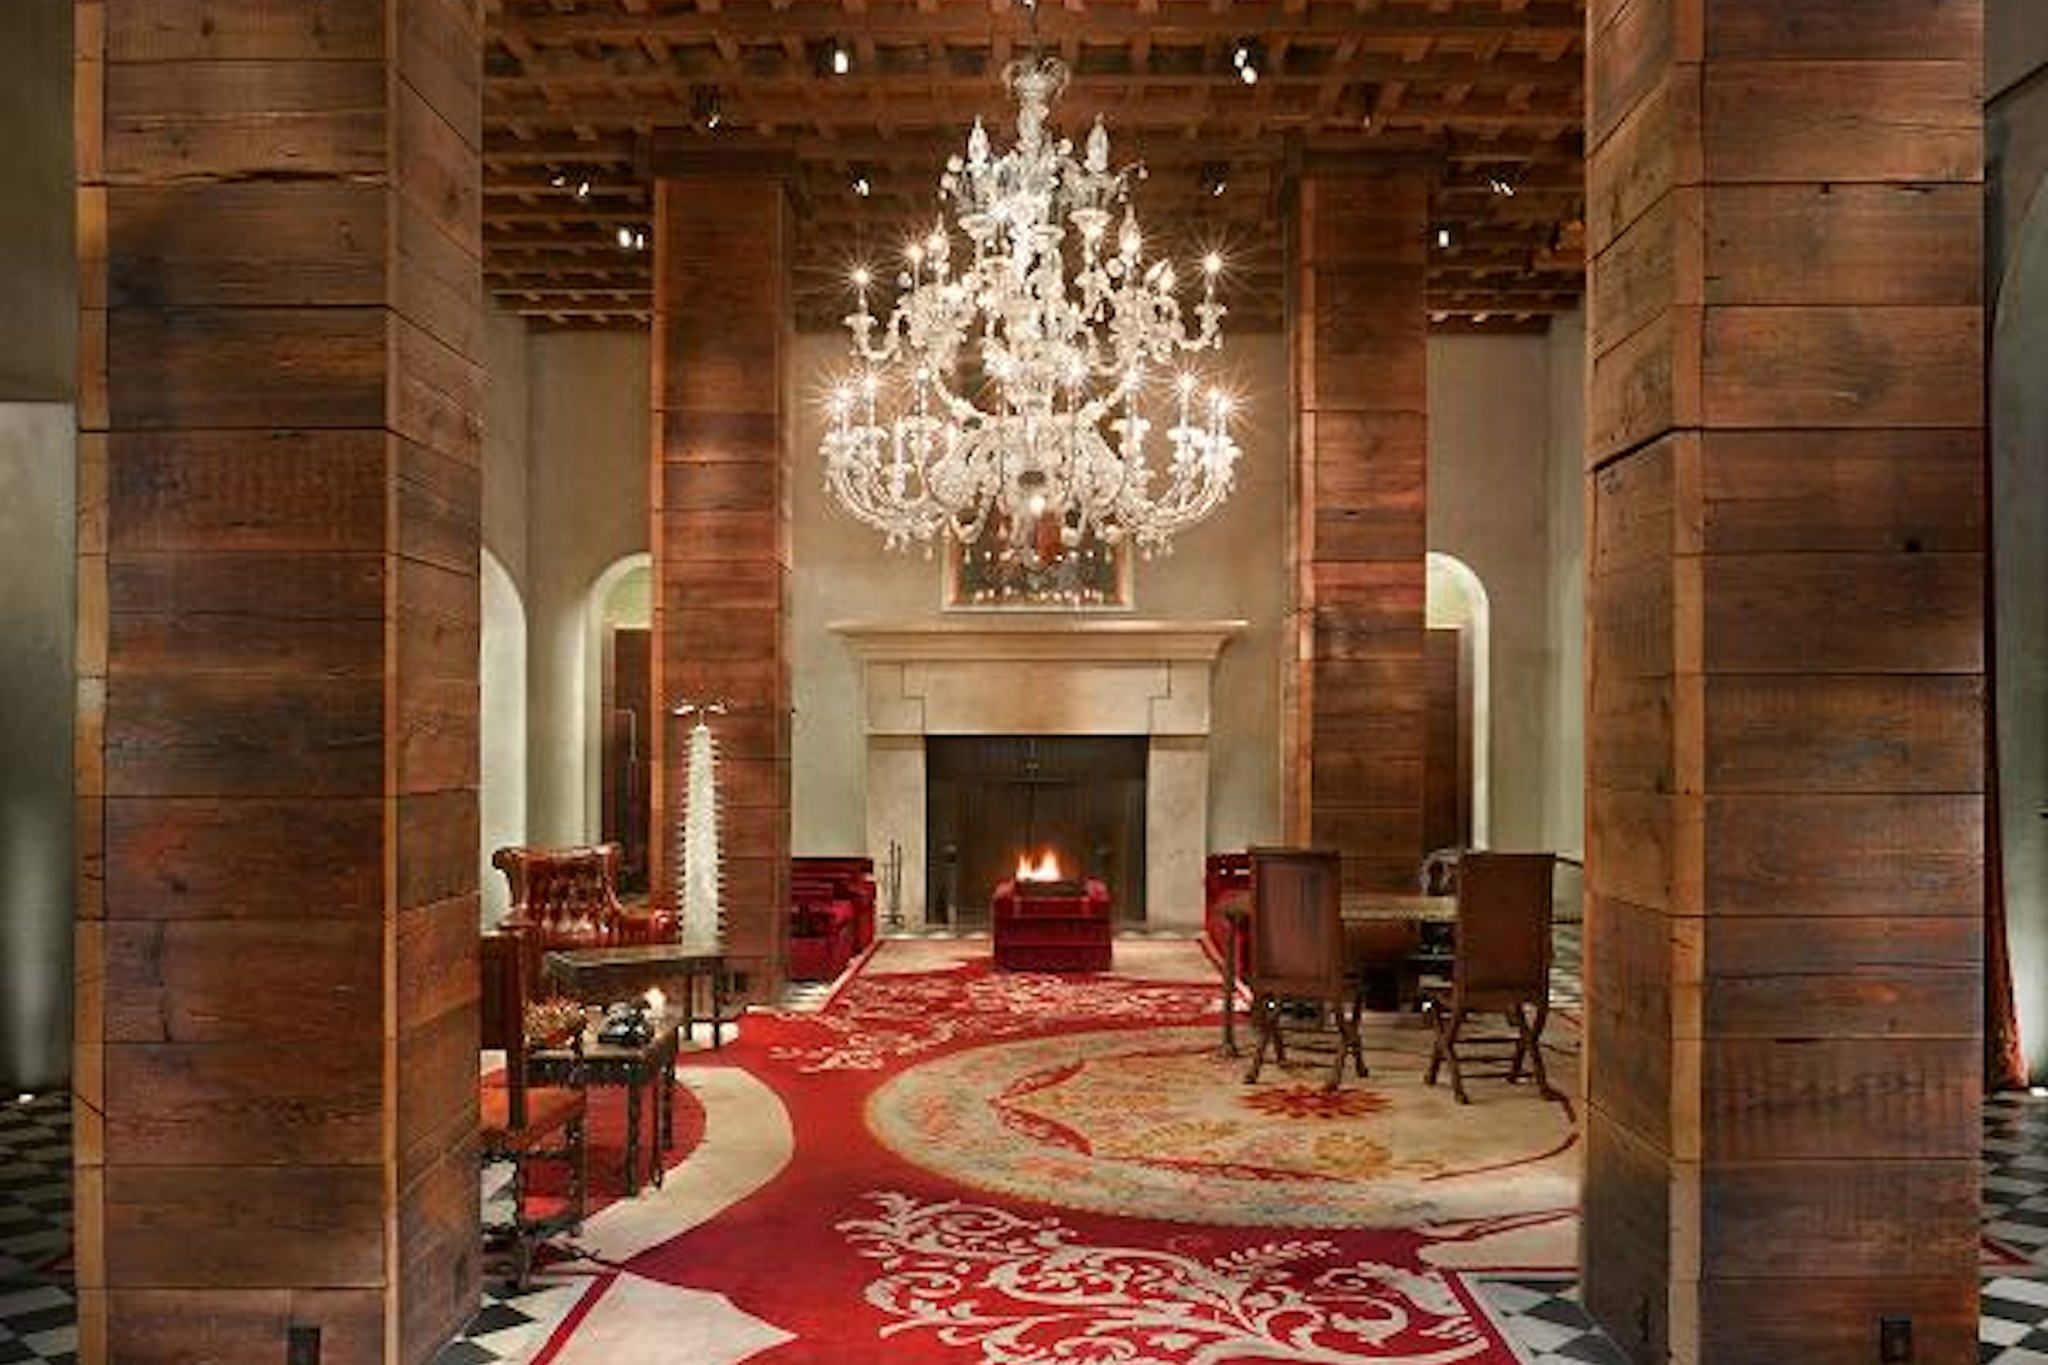 The most romantic hotels in NYC